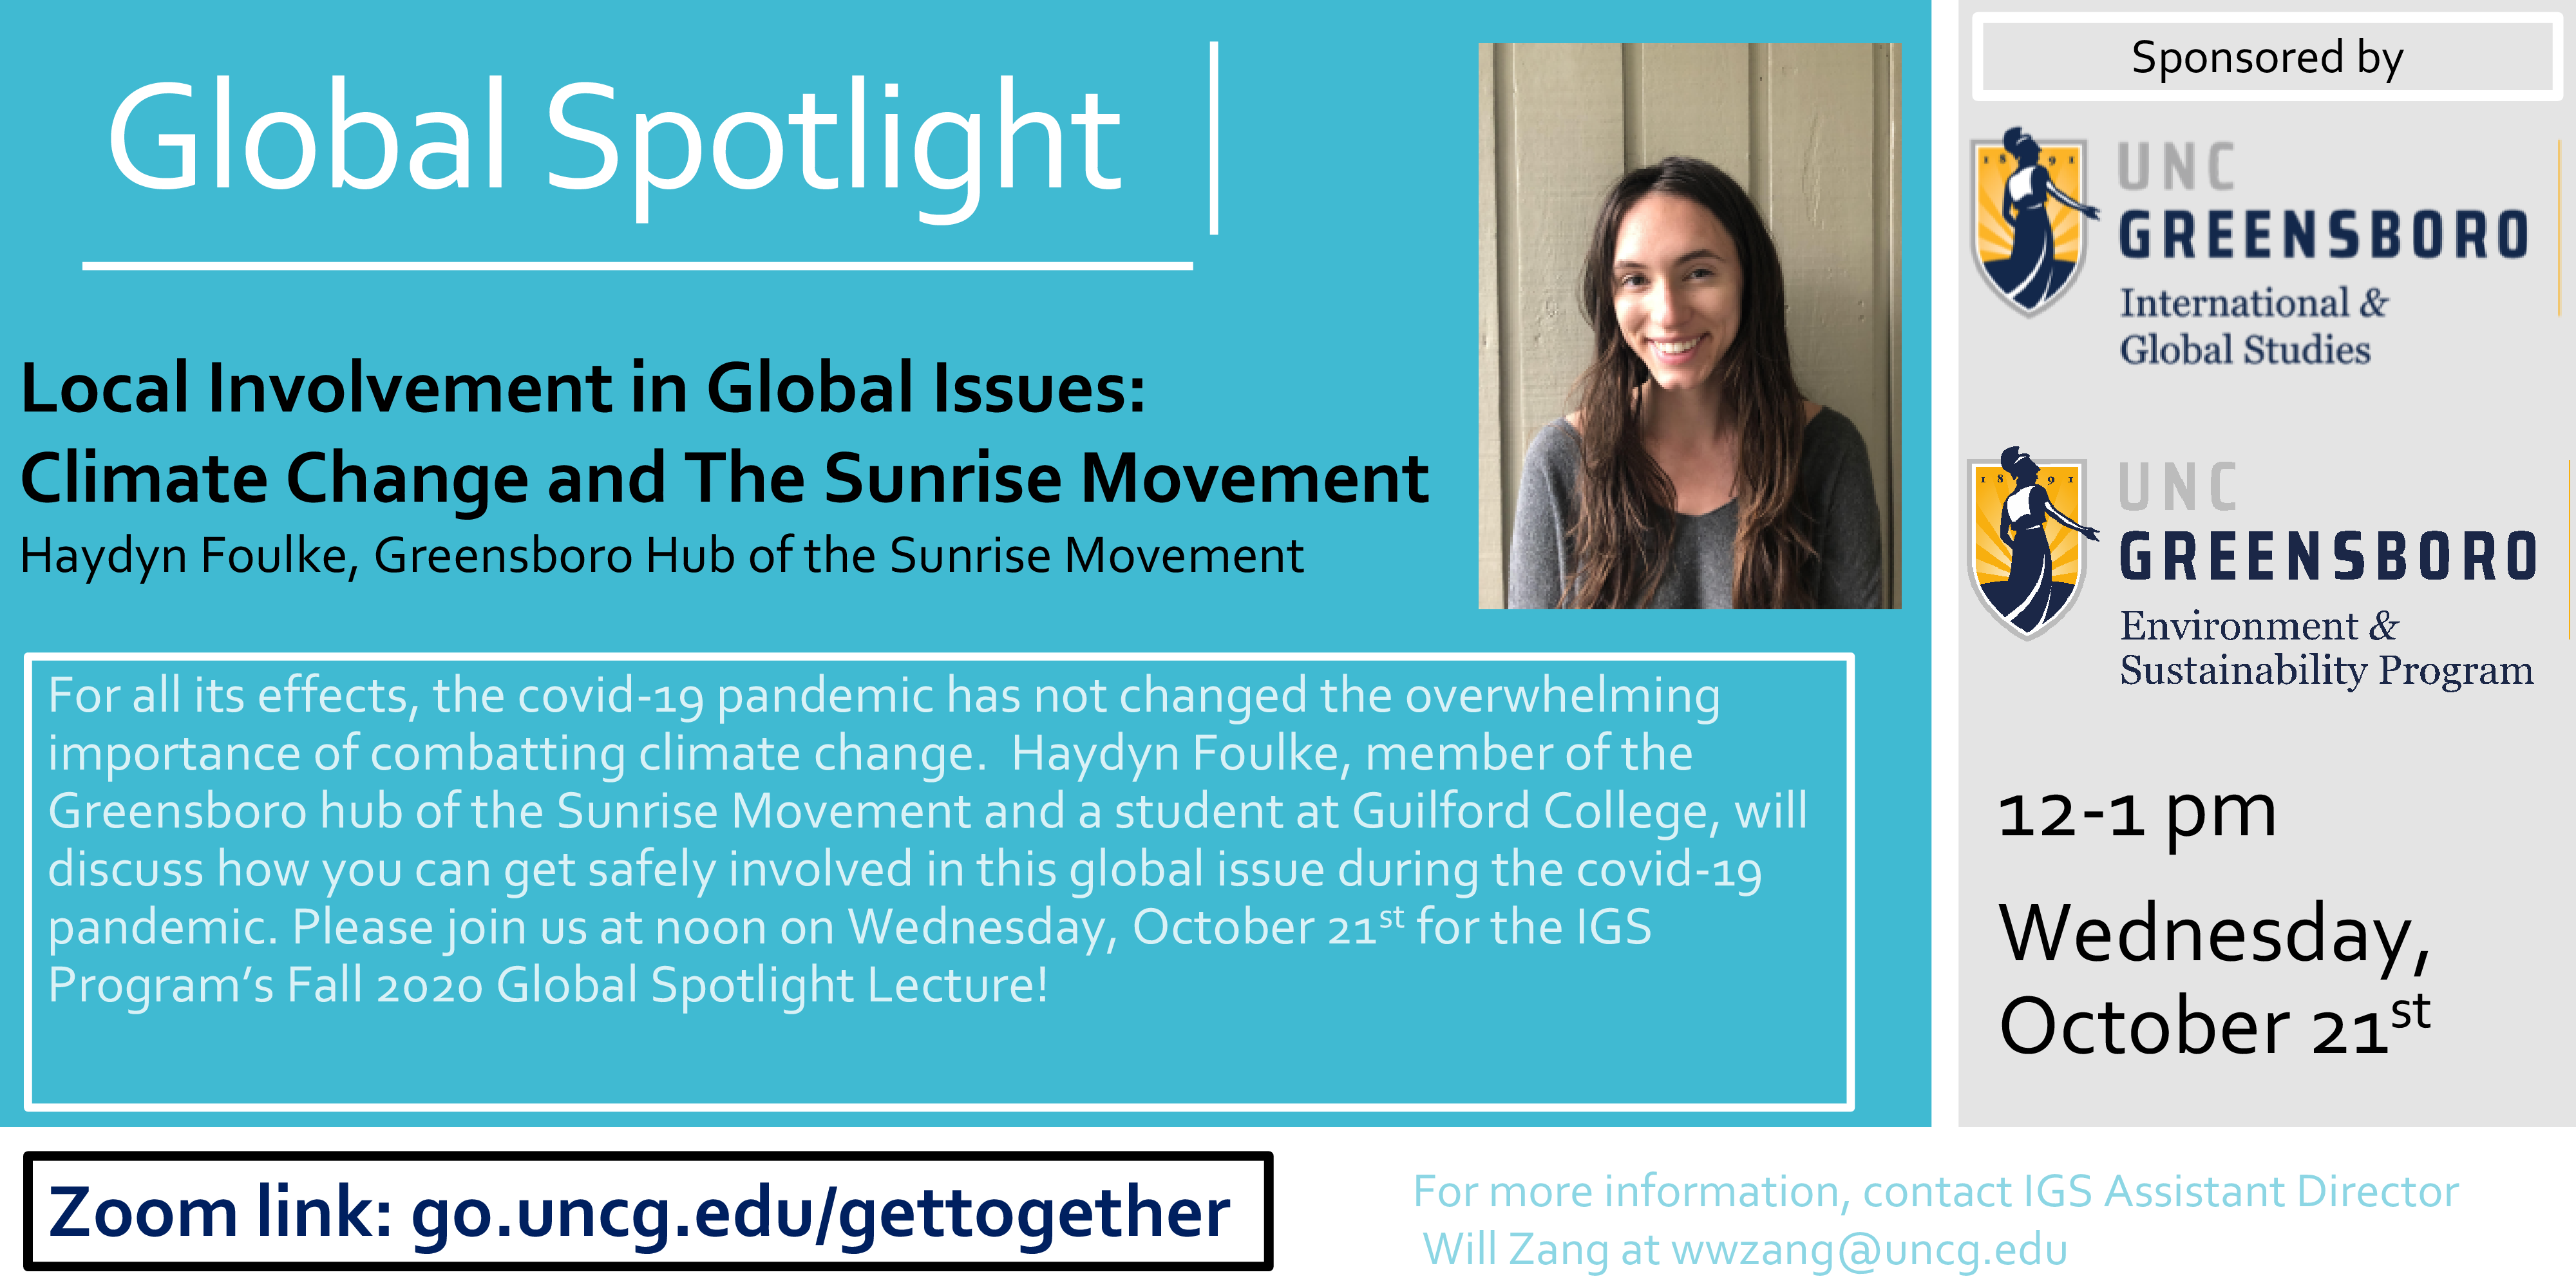 Global Spotlight Flyer